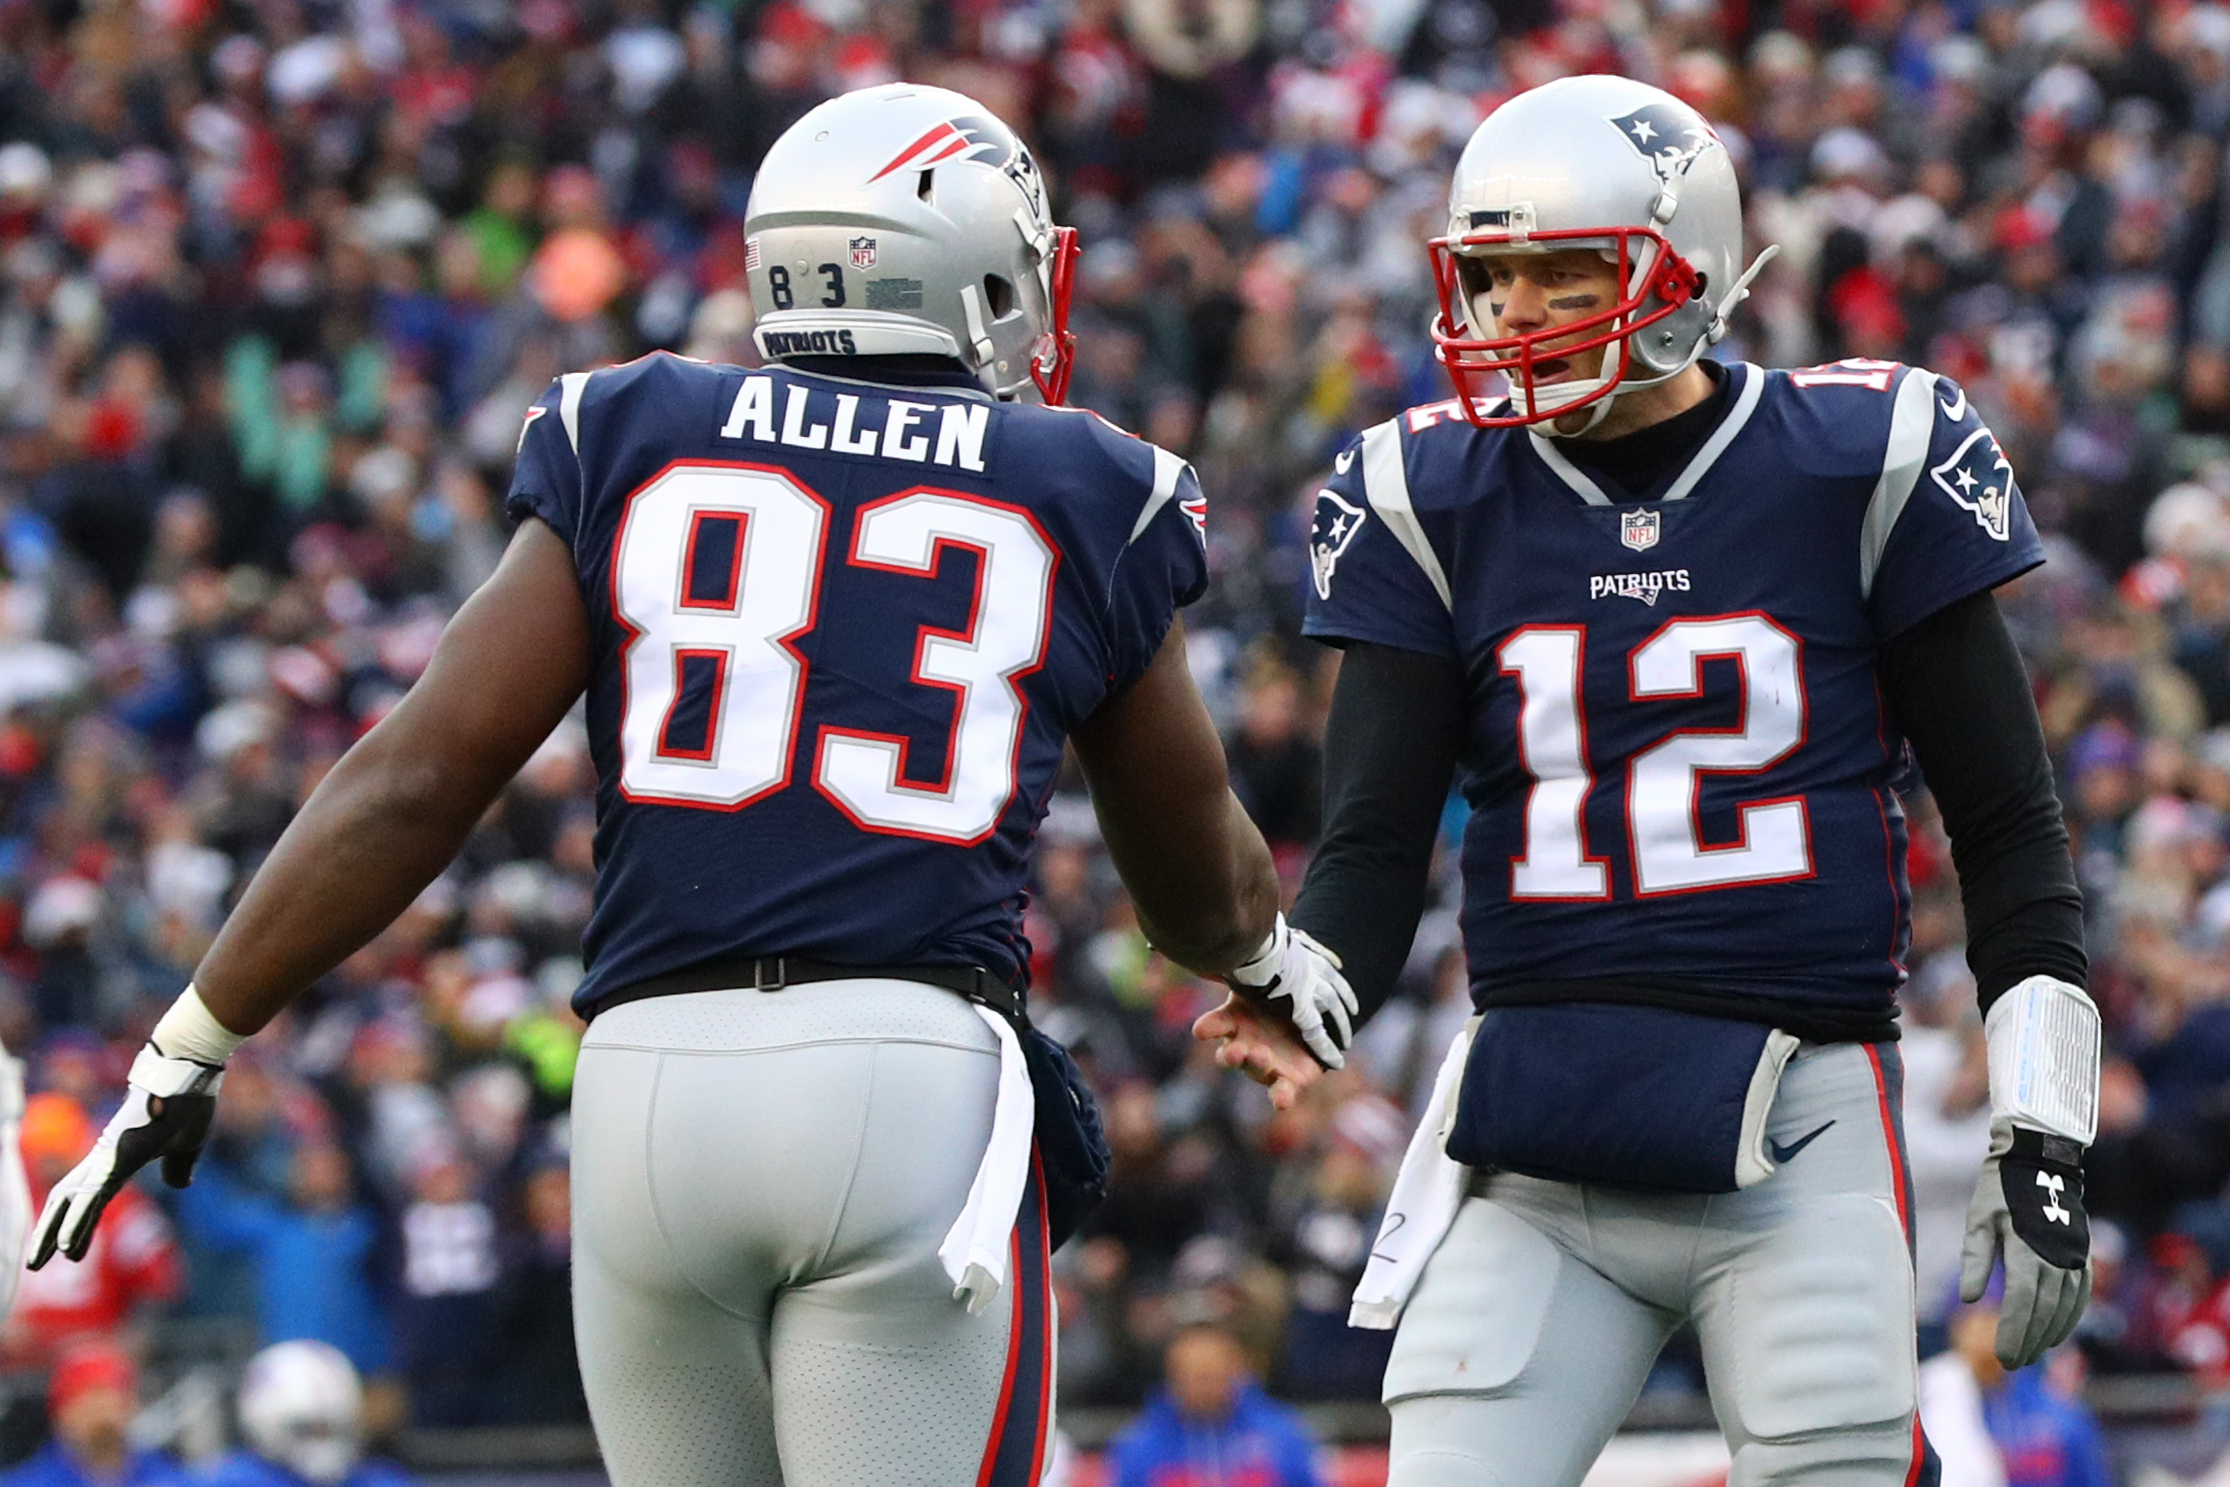 ae43317f Year in Review: Recapping New England Patriots' 2017 Season ...